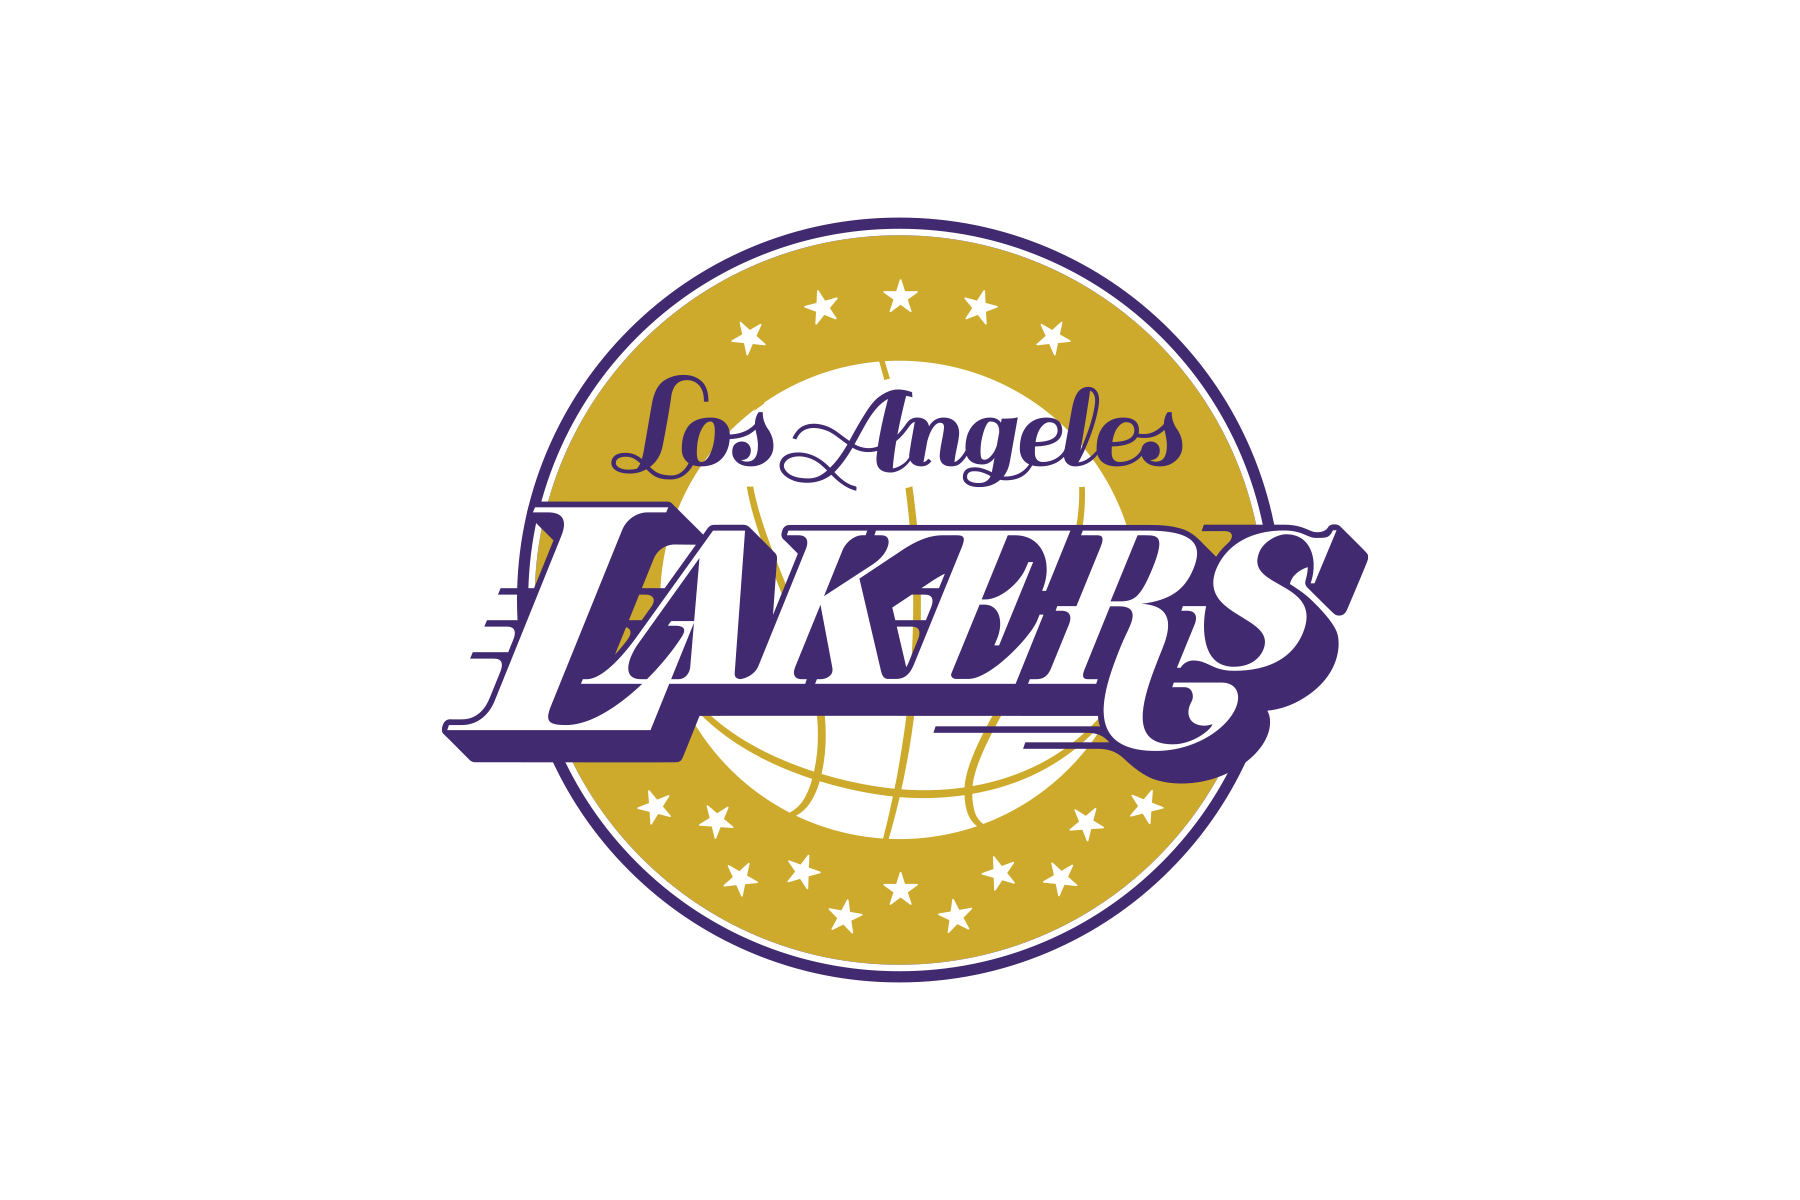 Michael weinstein nba logo redesigns los angeles lakers nba logo redesigns los angeles lakers voltagebd Image collections